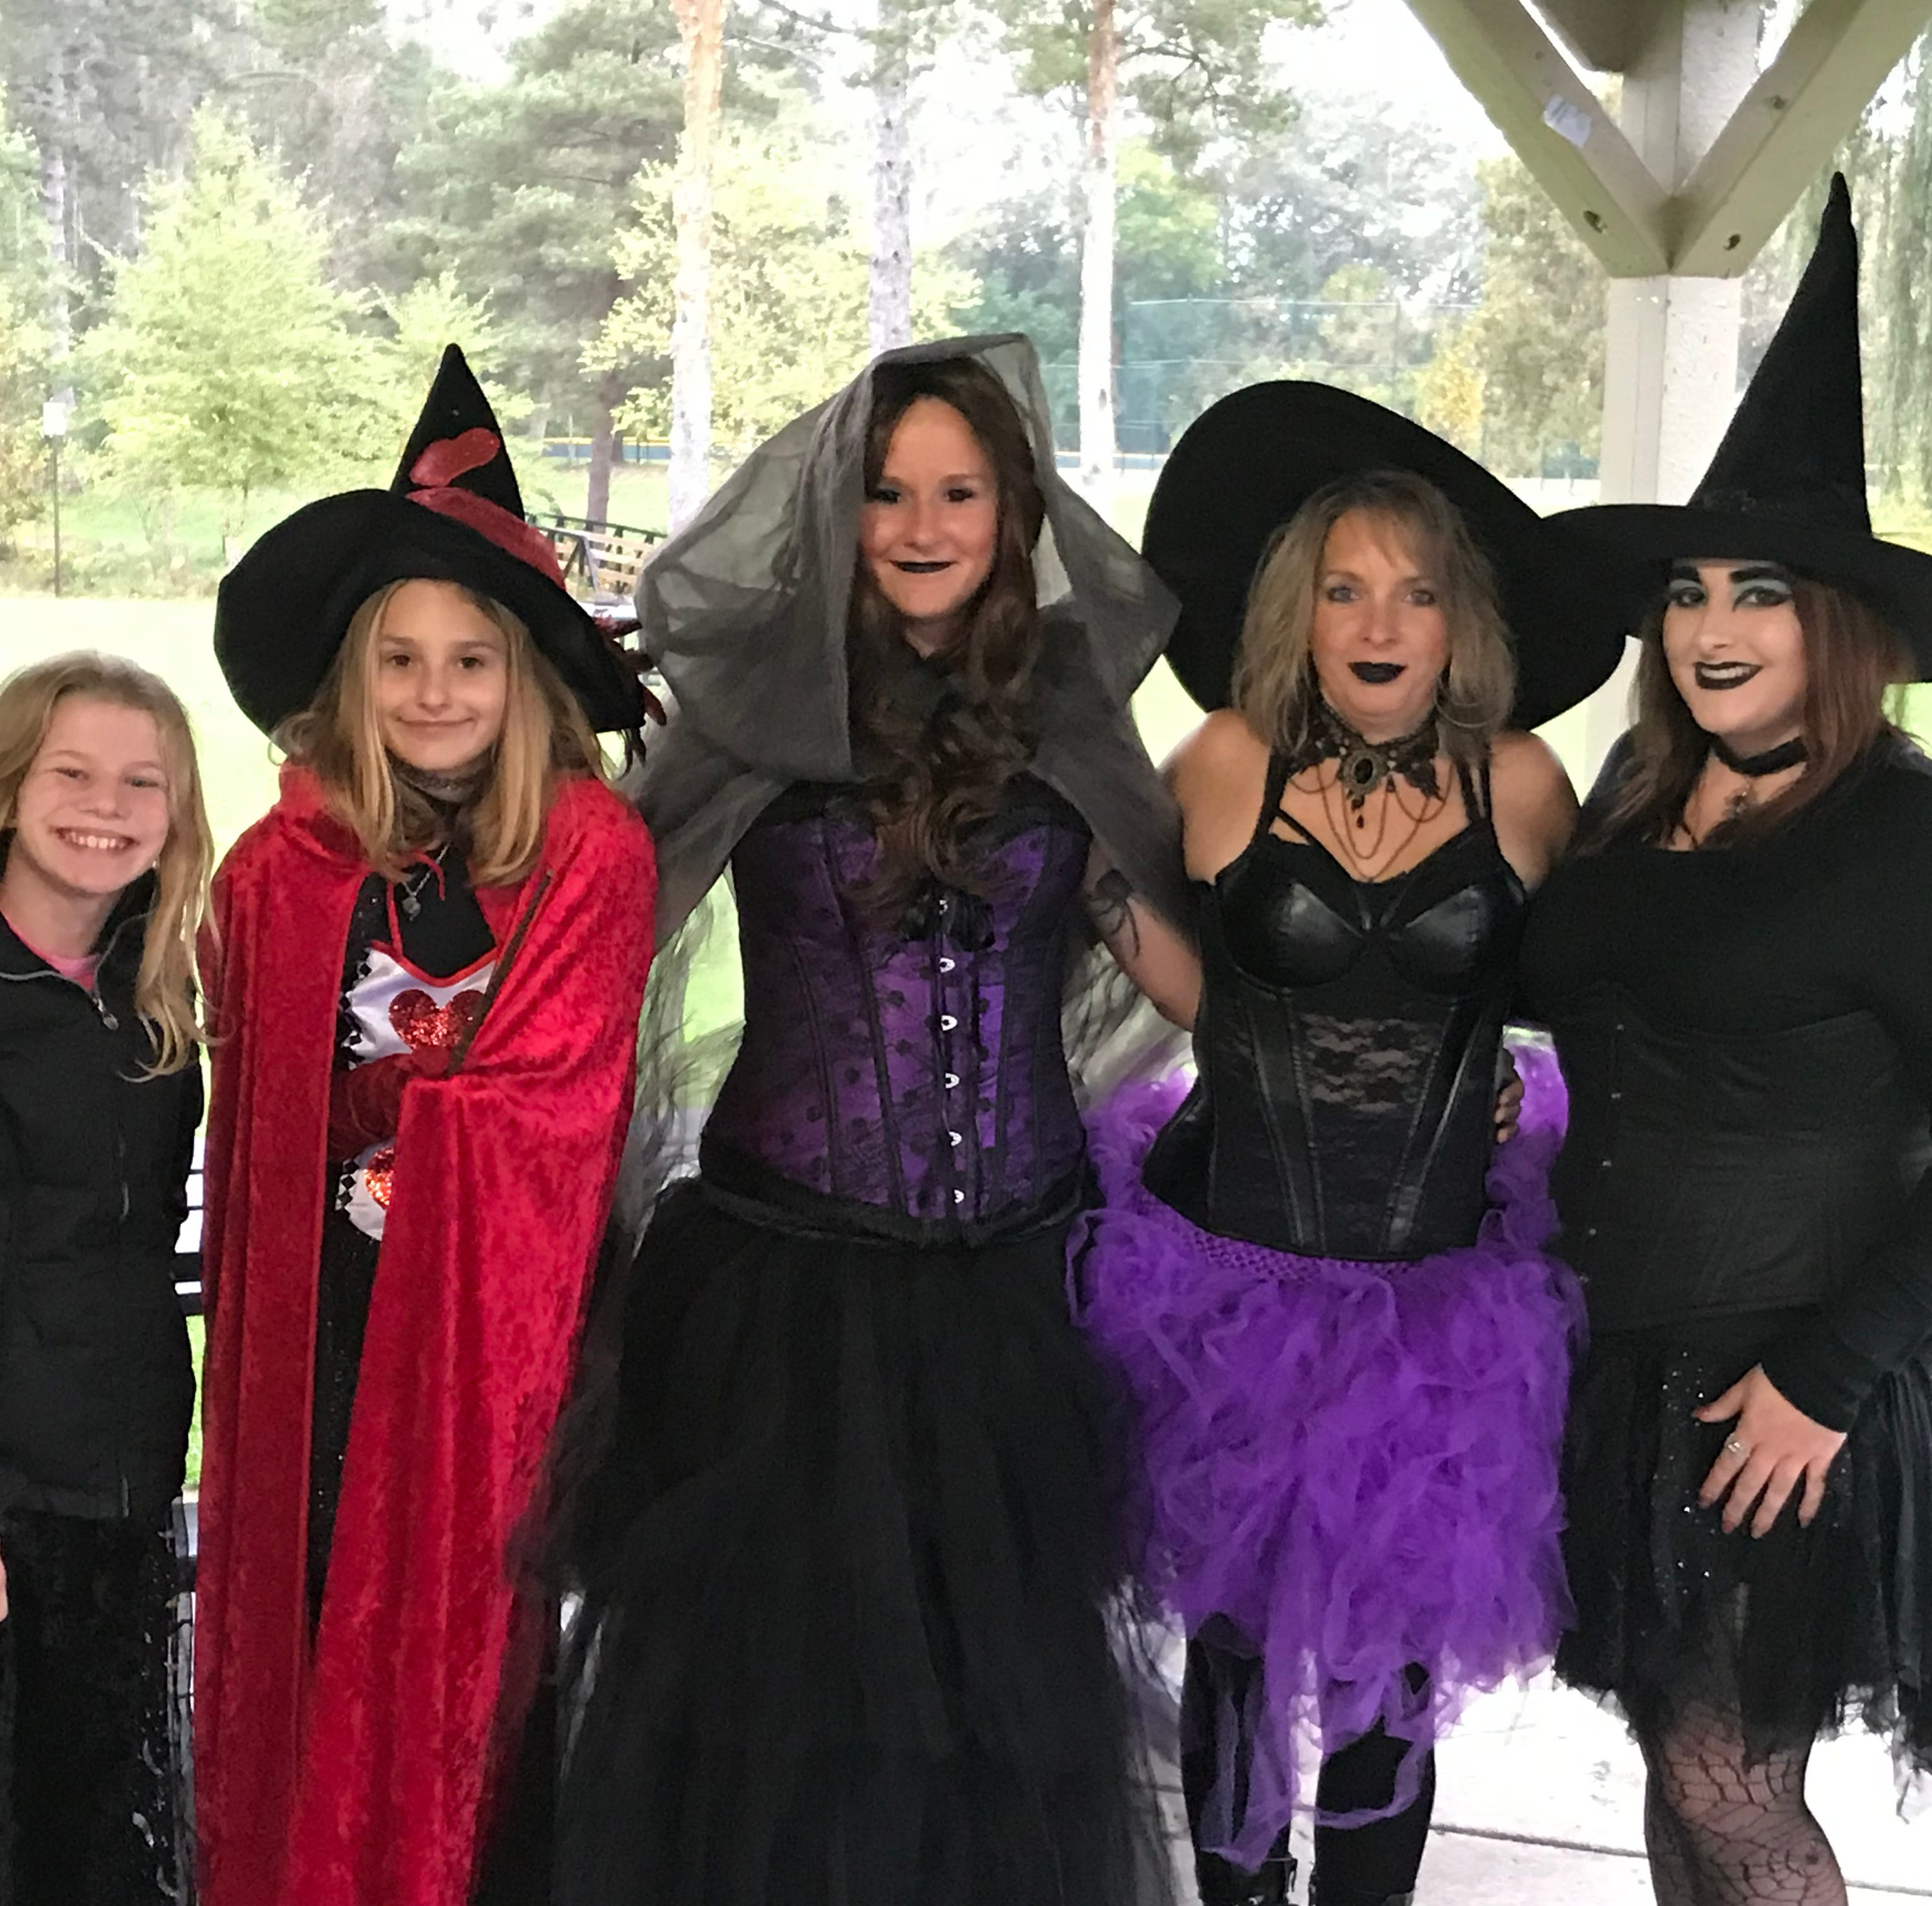 Witching hour: Rain can't dampen enthusiasm of Milford witches